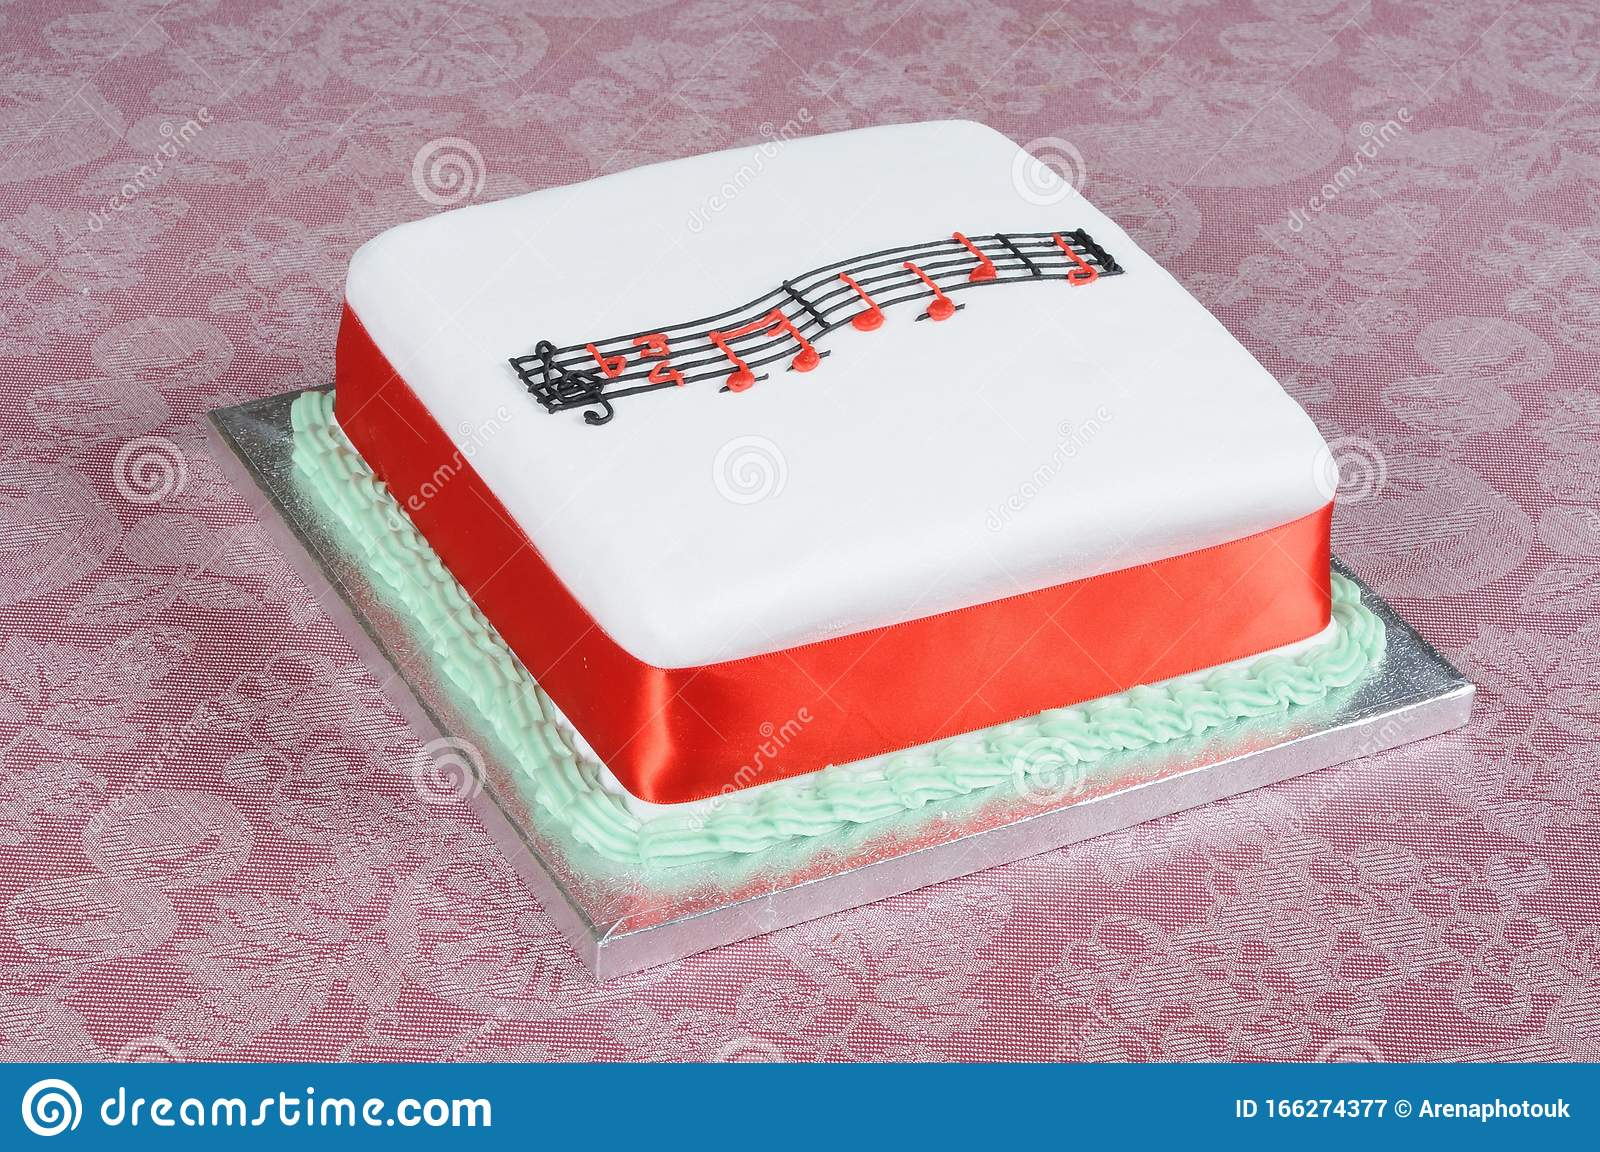 2 650 Square Birthday Cake Photos Free Royalty Free Stock Photos From Dreamstime